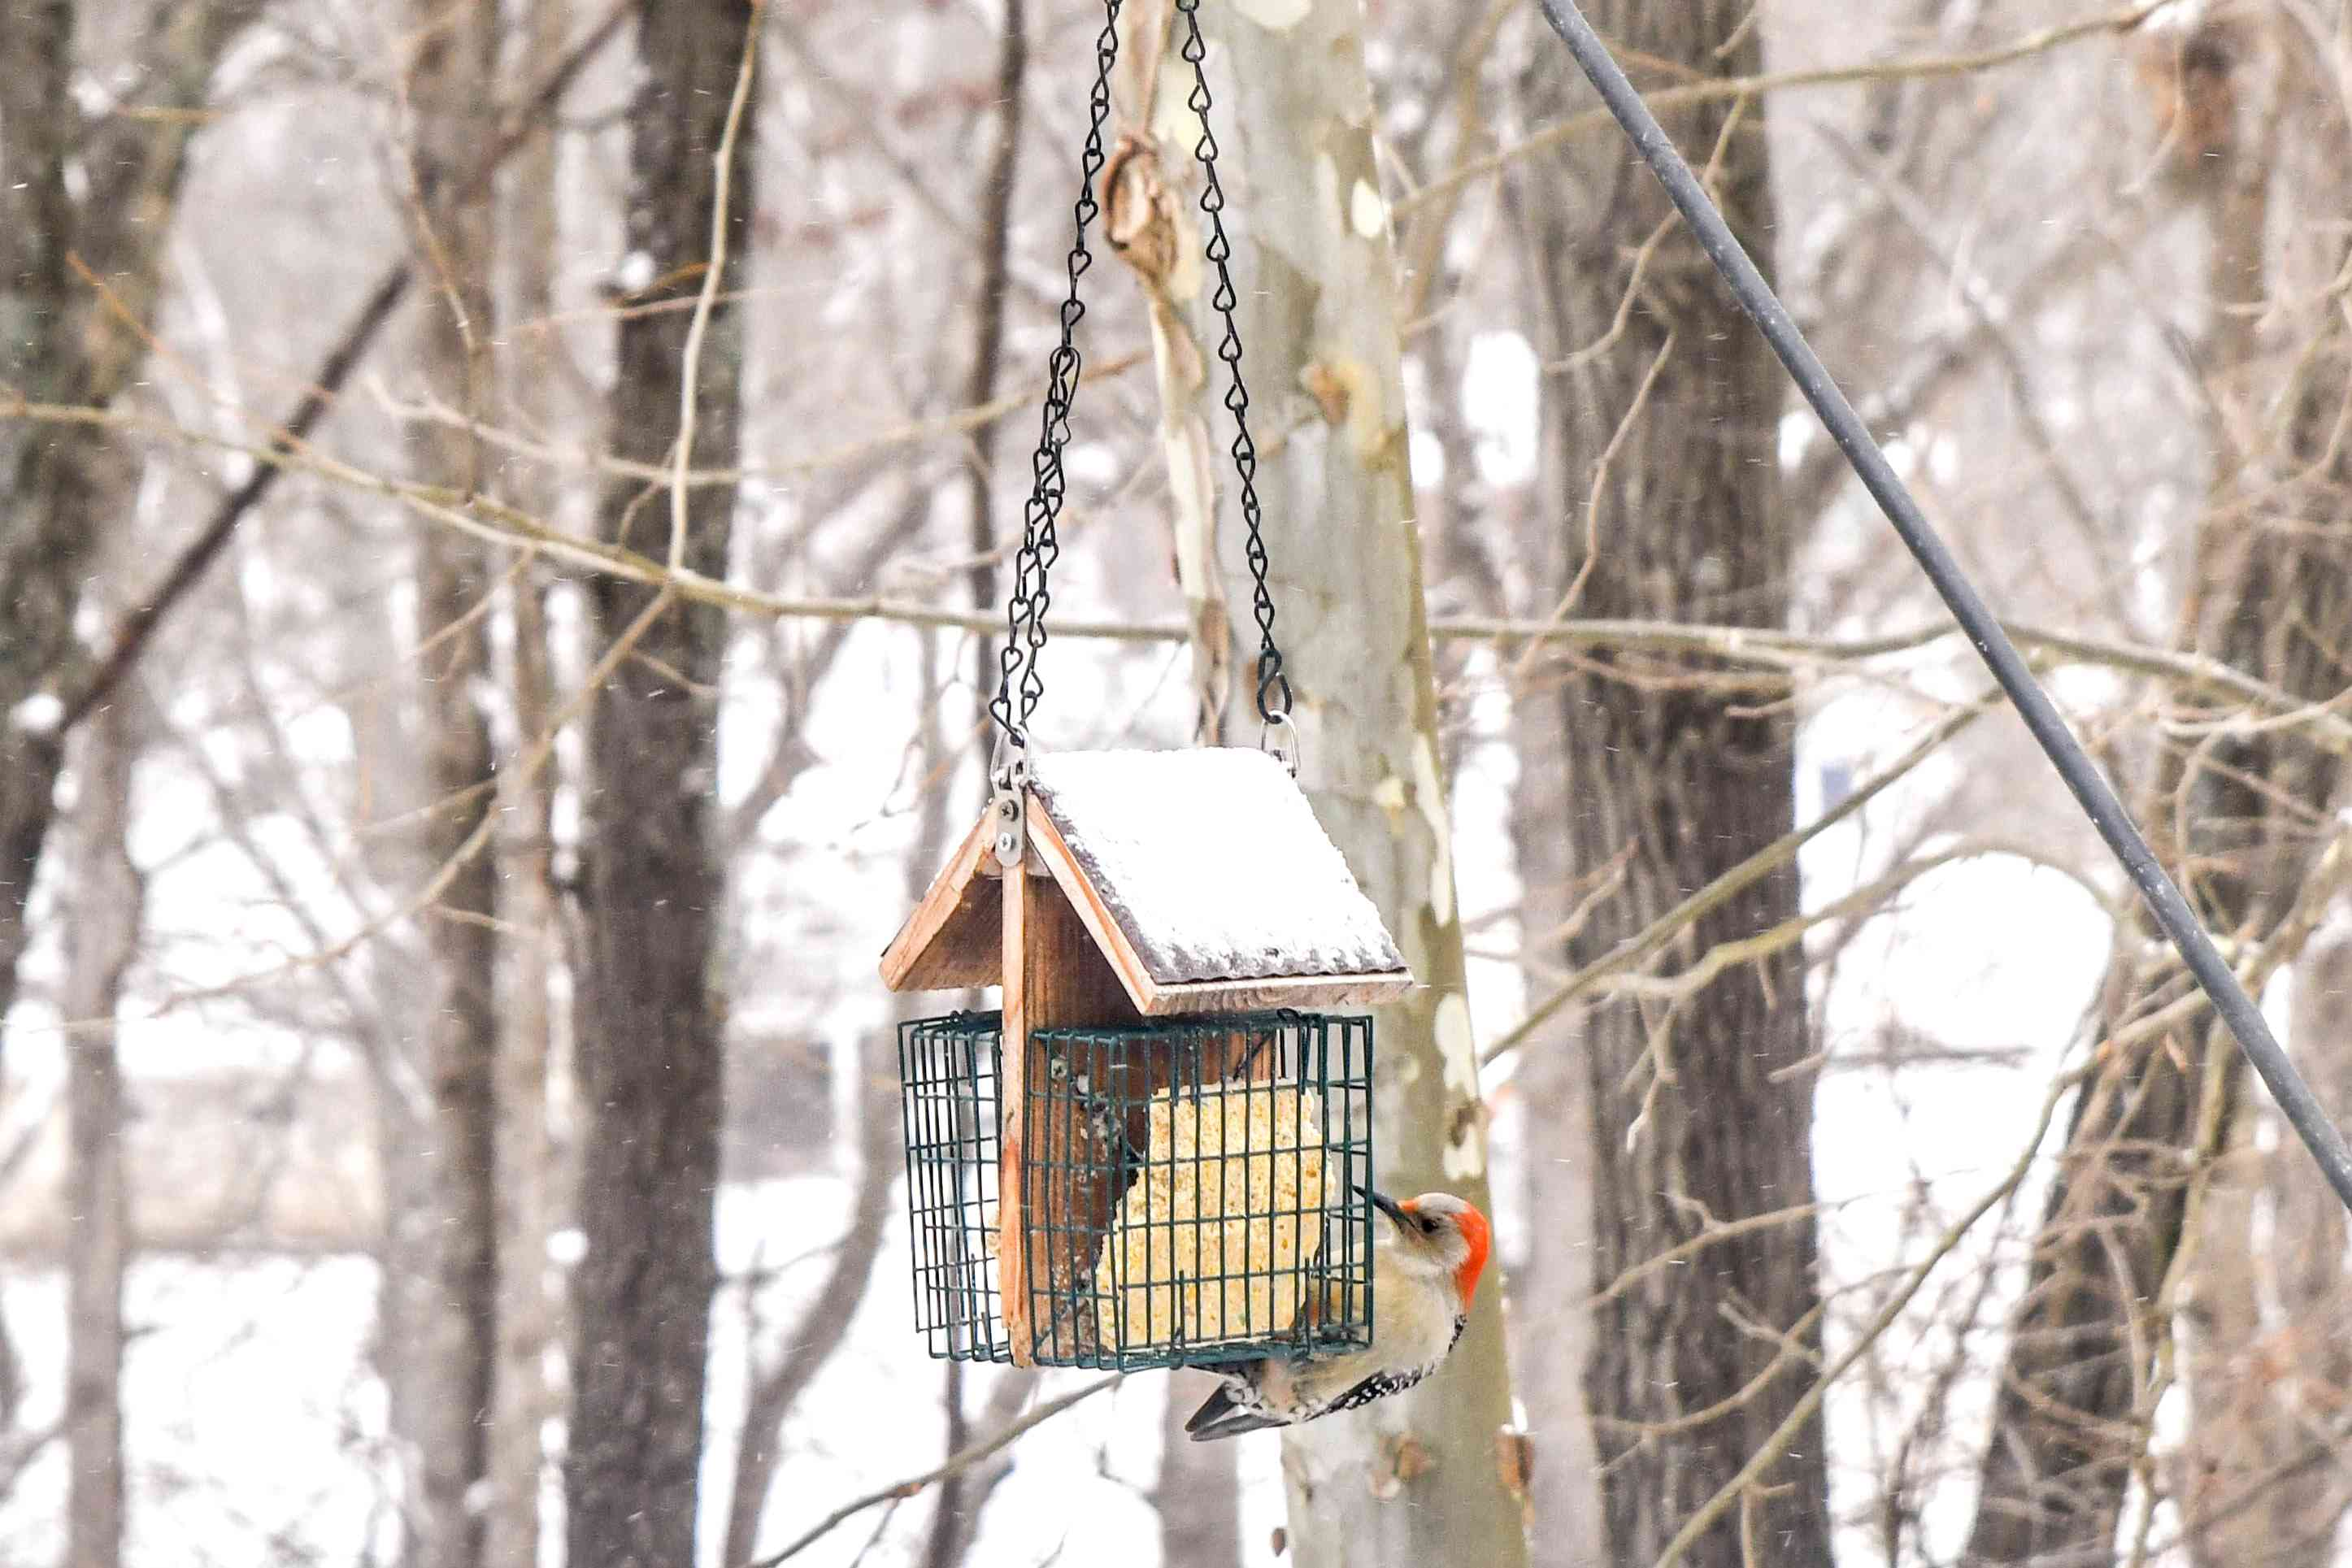 Bird feeder hanging with red-headed woodpecker eating from seed pack in front of snow-covered trees